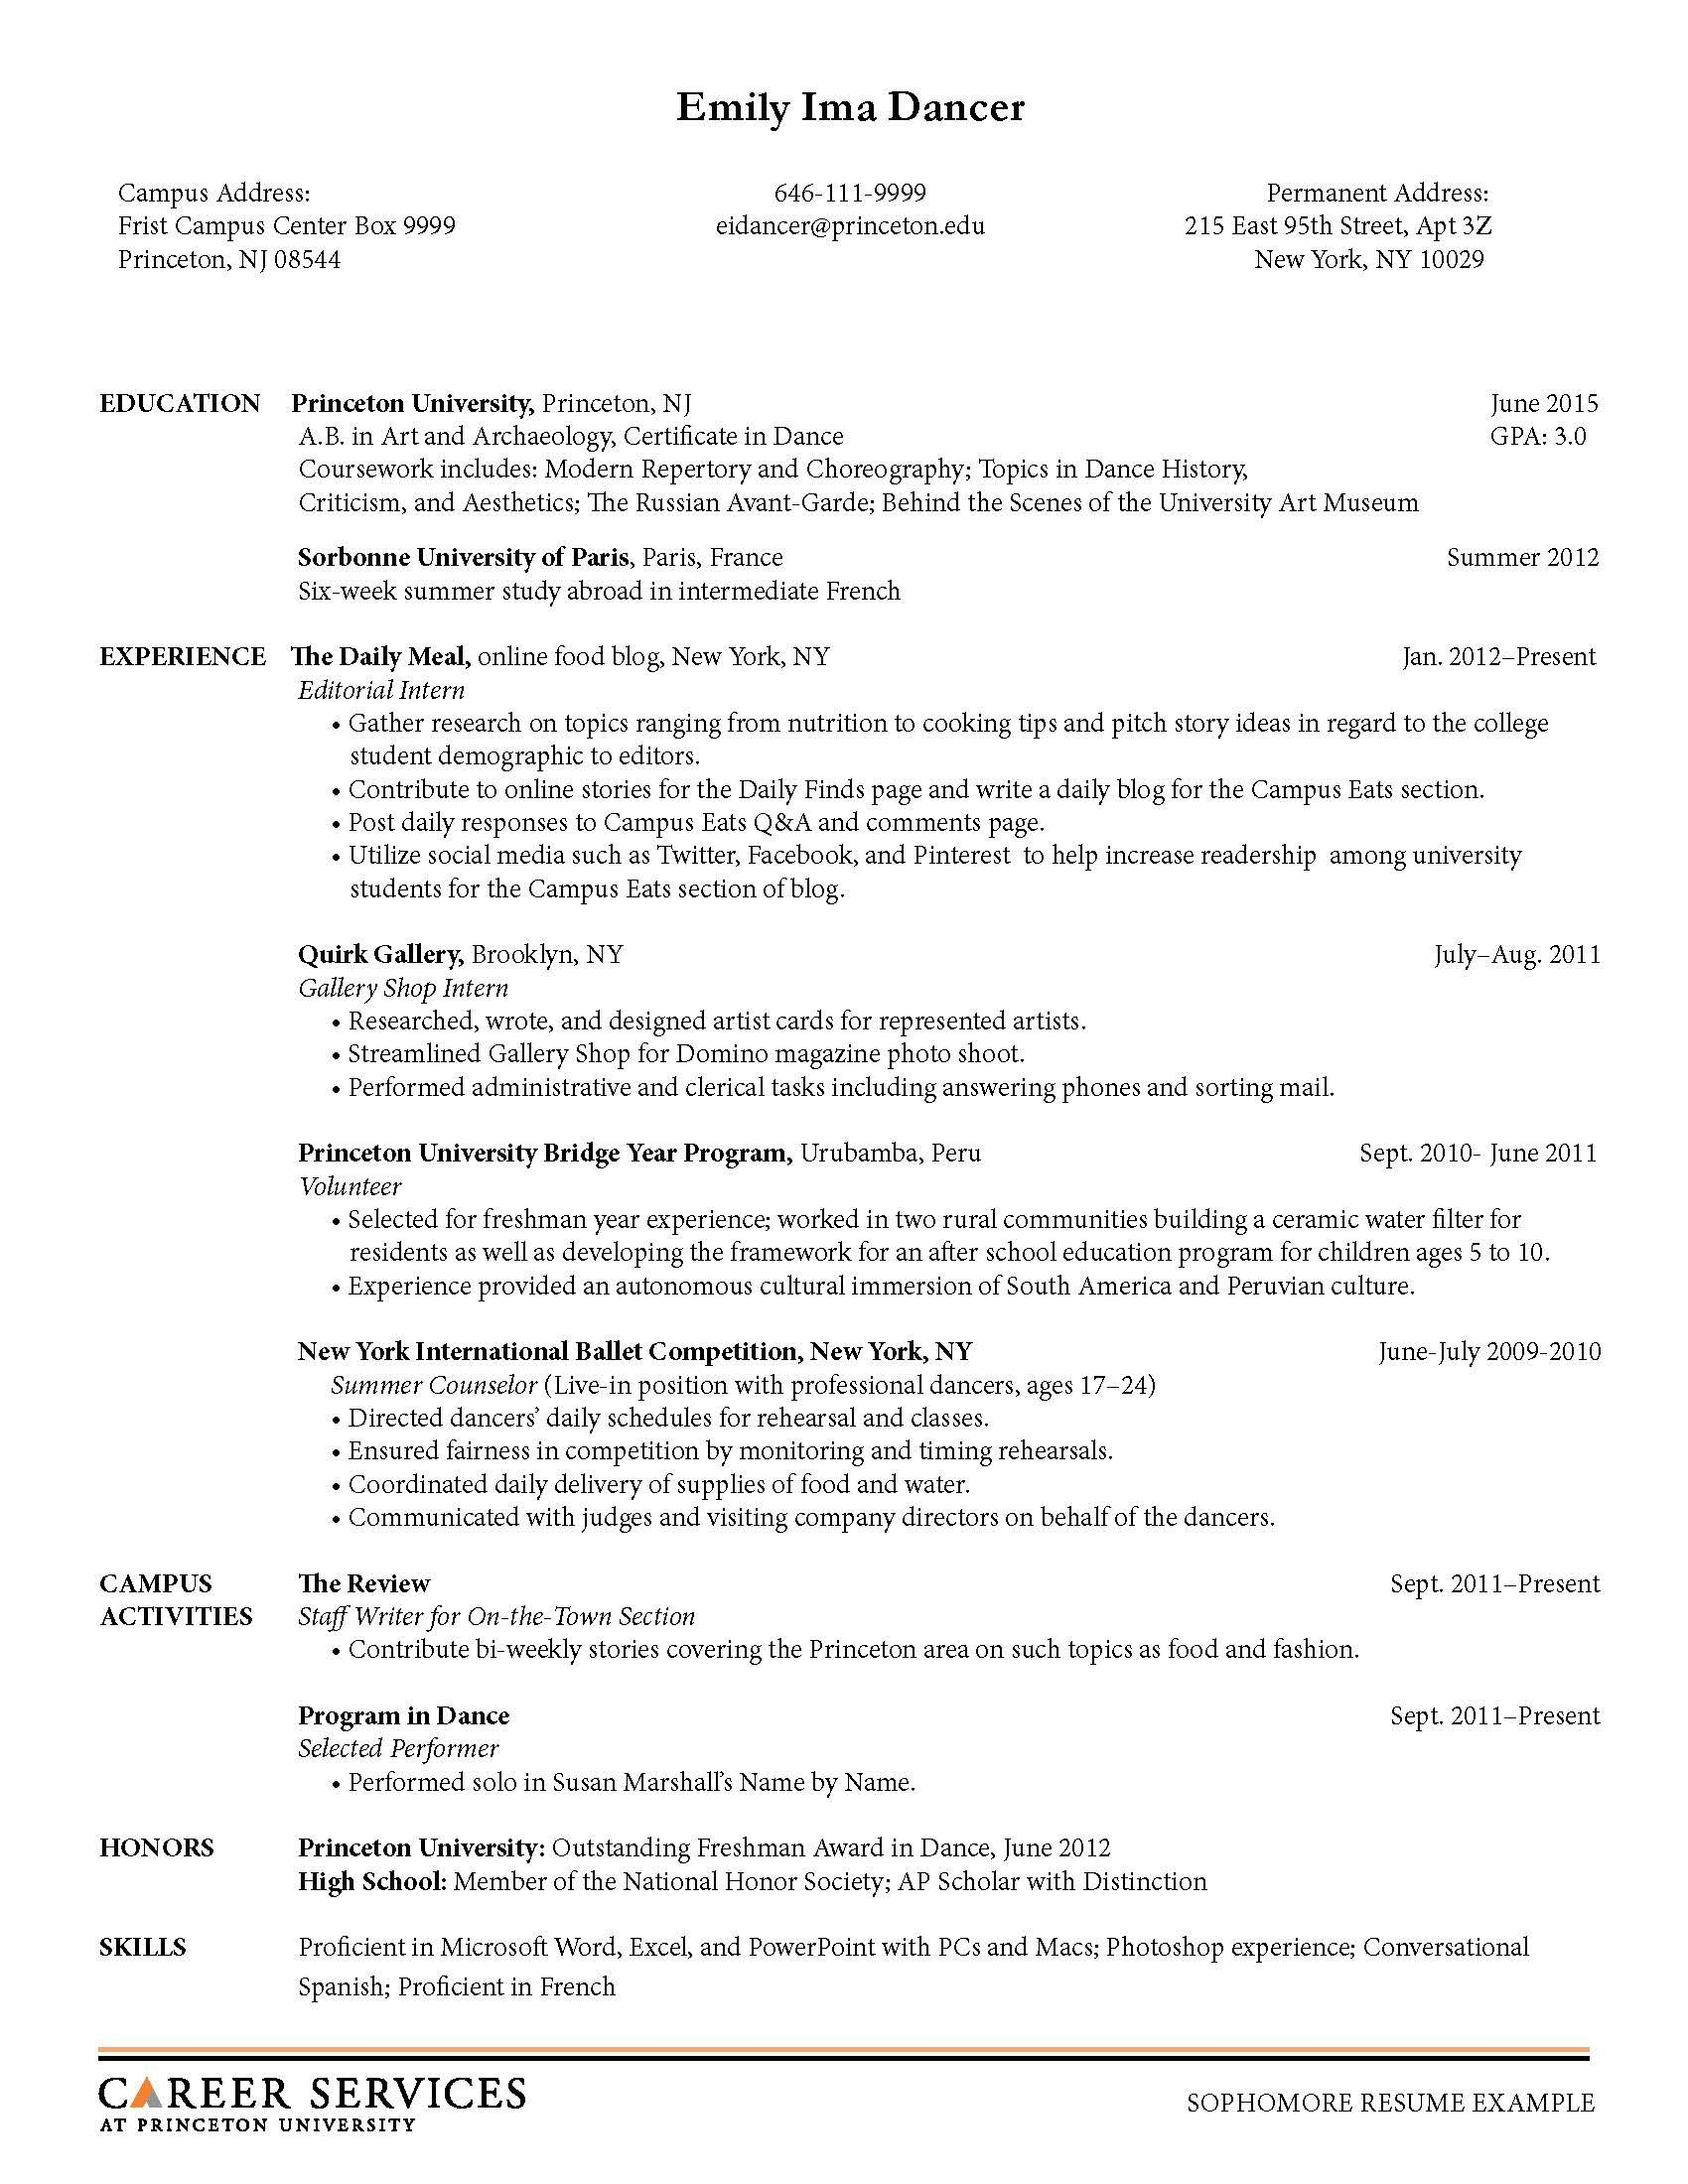 Opposenewapstandardsus  Scenic Sample Resume Resume And Career On Pinterest With Goodlooking Resume Requirements Besides Free Online Resumes Furthermore Best Font To Use On Resume With Nice Executive Assistant Resumes Also Resume Paper Target In Addition Online Resume Creator And Good Resume Titles As Well As Resume For Someone With No Experience Additionally Office Skills Resume From Pinterestcom With Opposenewapstandardsus  Goodlooking Sample Resume Resume And Career On Pinterest With Nice Resume Requirements Besides Free Online Resumes Furthermore Best Font To Use On Resume And Scenic Executive Assistant Resumes Also Resume Paper Target In Addition Online Resume Creator From Pinterestcom